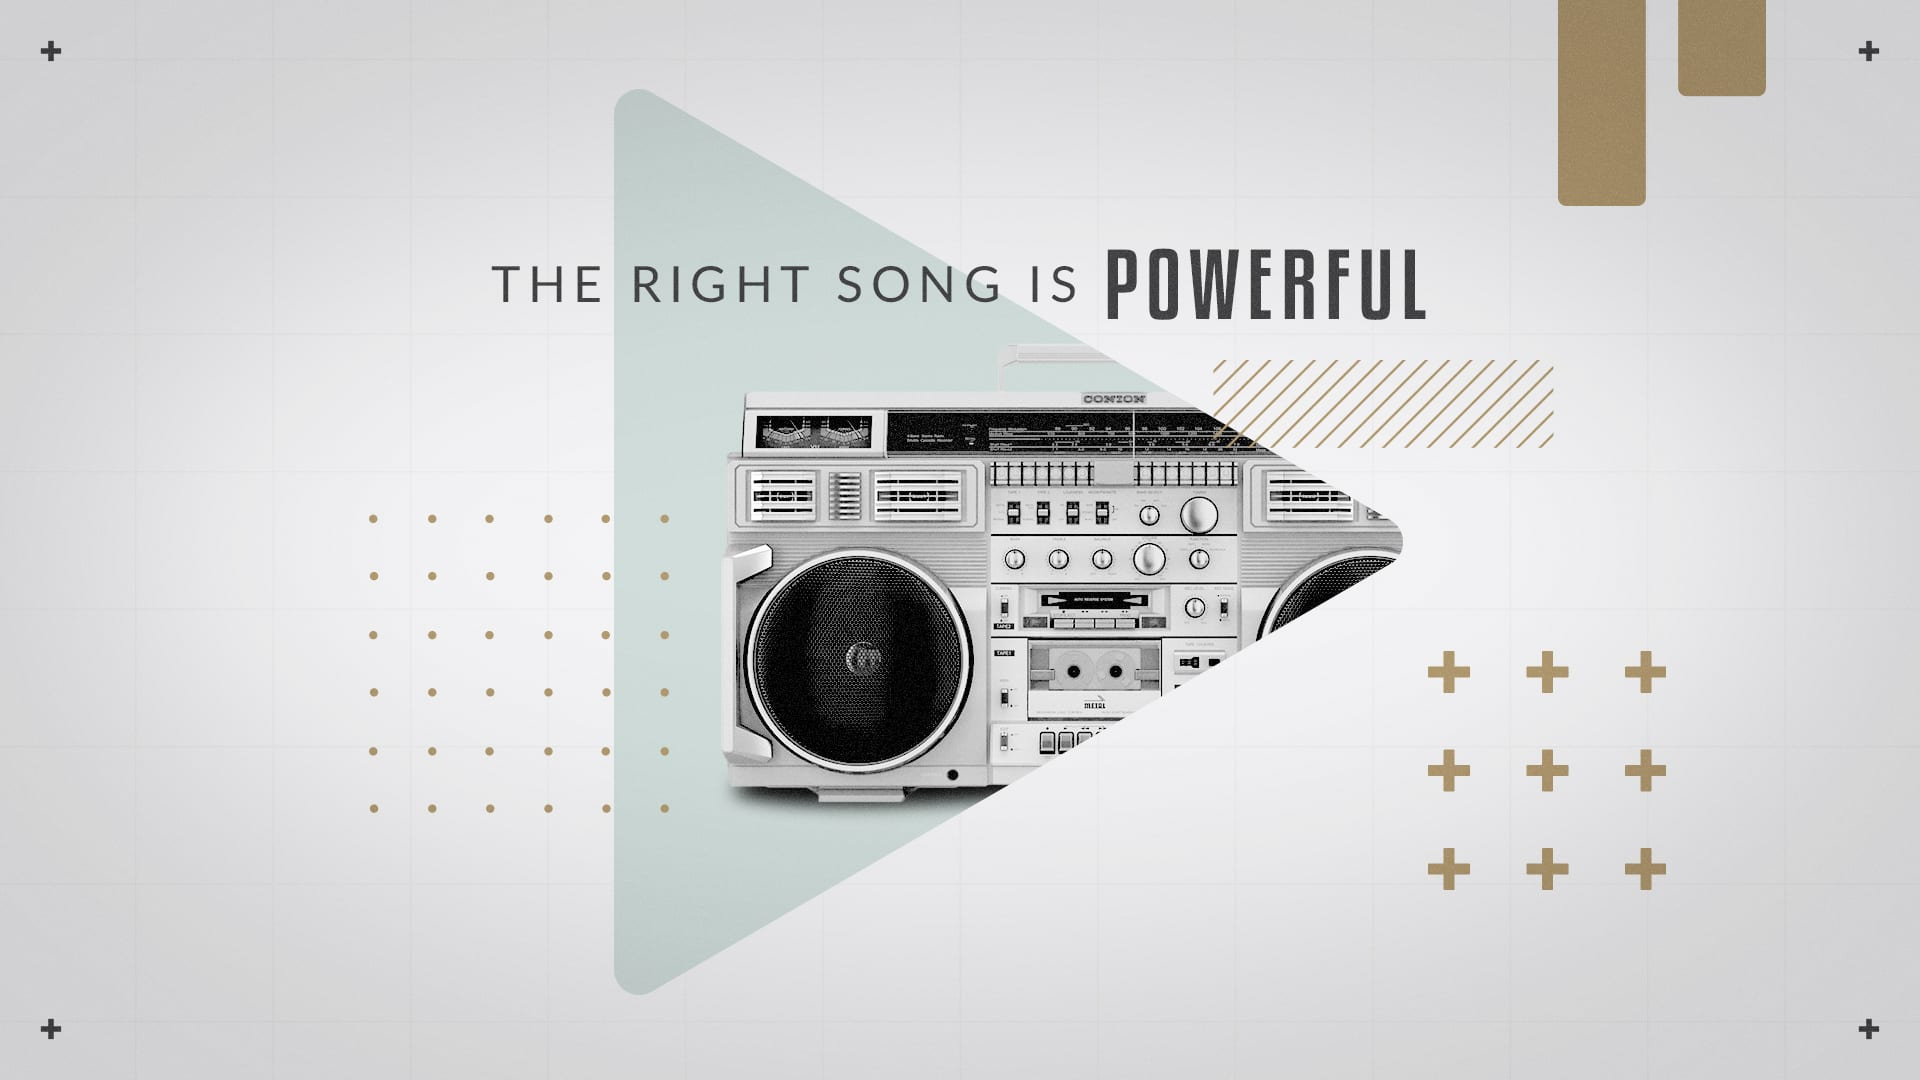 B01 – The right song